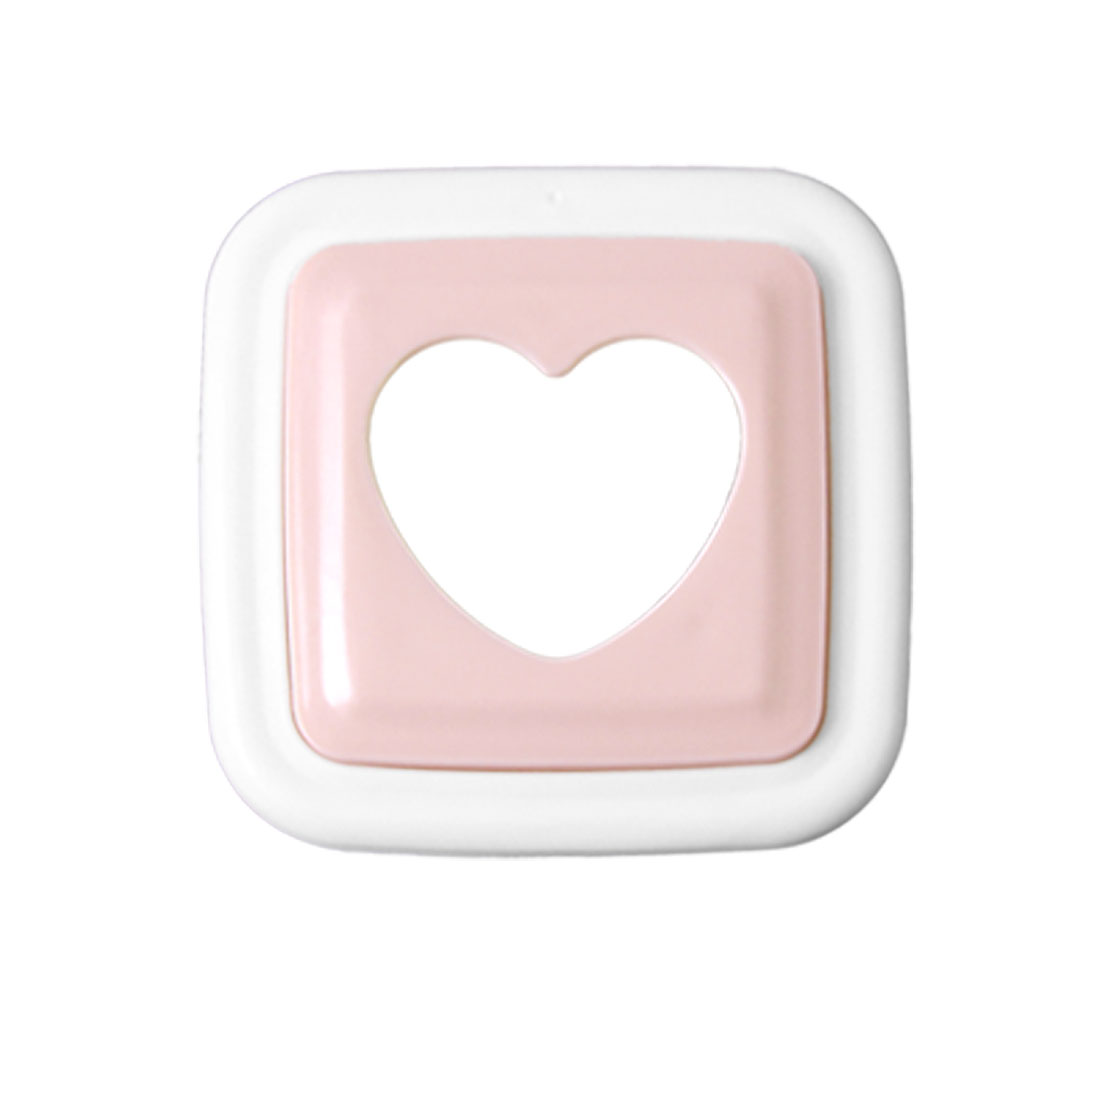 White Pink Plastic Cooking Sandwich Heart Mold Cutter Maker